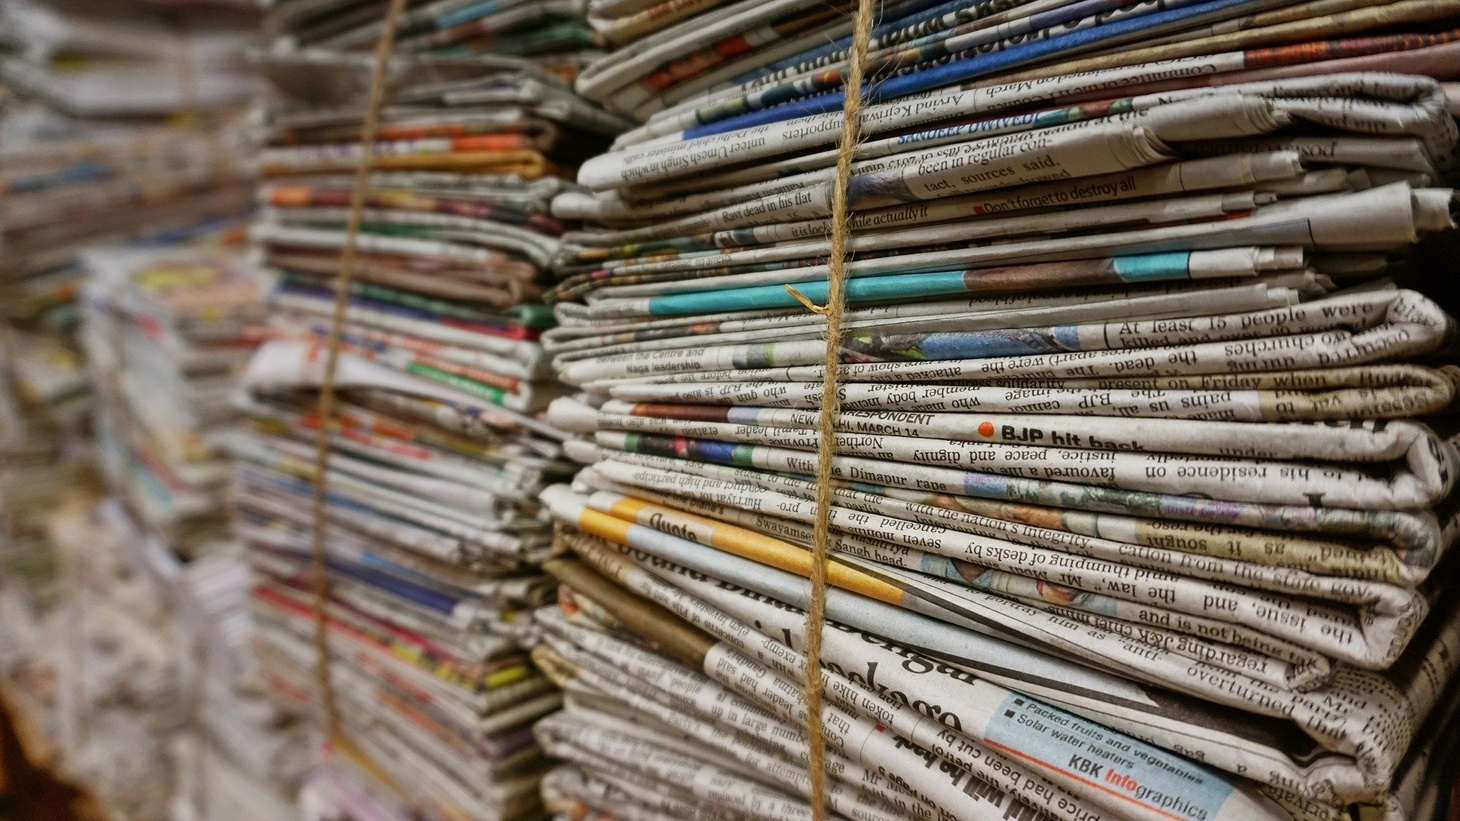 Tens of thousands of news workers nationwide have been laid off, furloughed, or had their pay reduced. That's according to the New York Times.